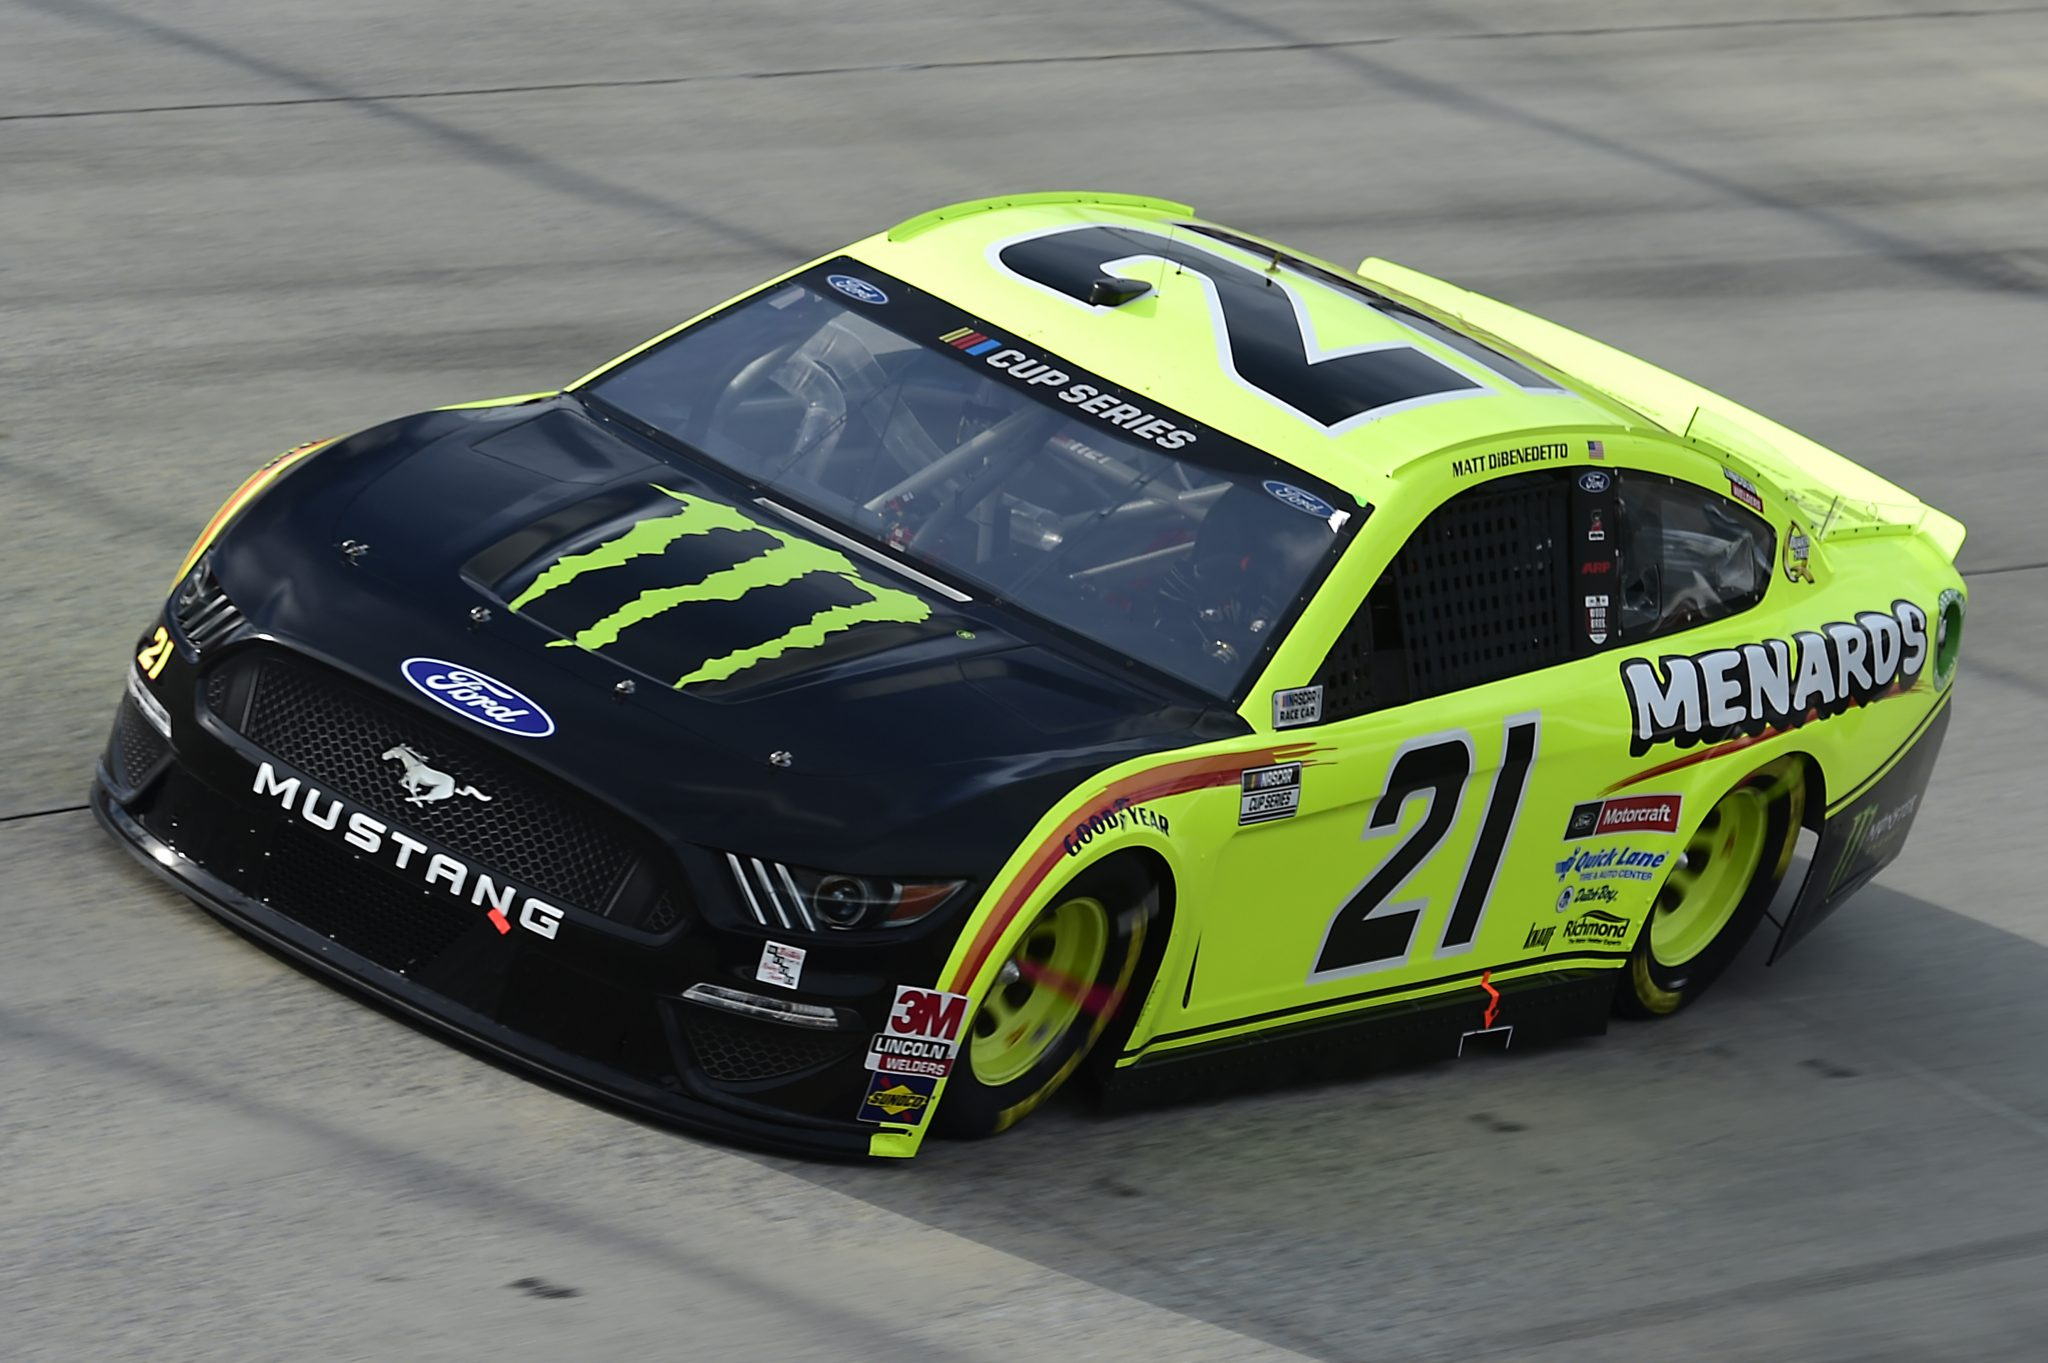 DOVER, DELAWARE - AUGUST 22: Matt DiBenedetto, driver of the #21 Menards/Monster Energy Ford, drives during the NASCAR Cup Series Drydene 311 at Dover International Speedway on August 22, 2020 in Dover, Delaware. (Photo by Jared C. Tilton/Getty Images) | Getty Images